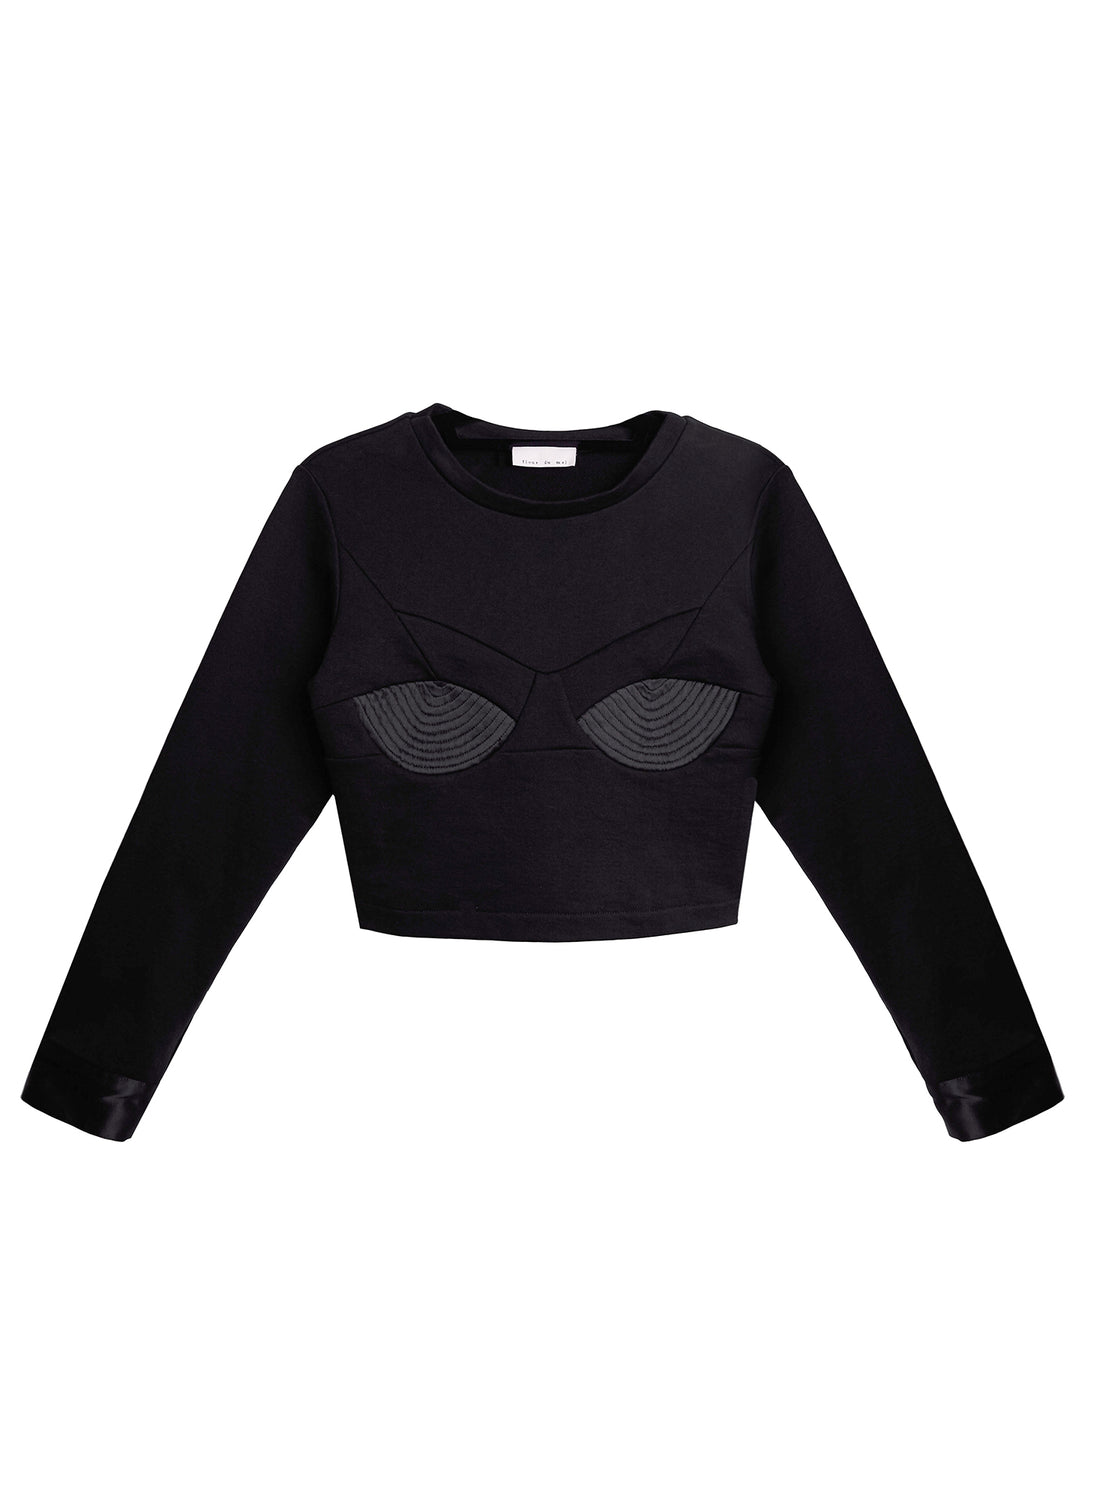 Top Stitch Bebe Sweatshirt